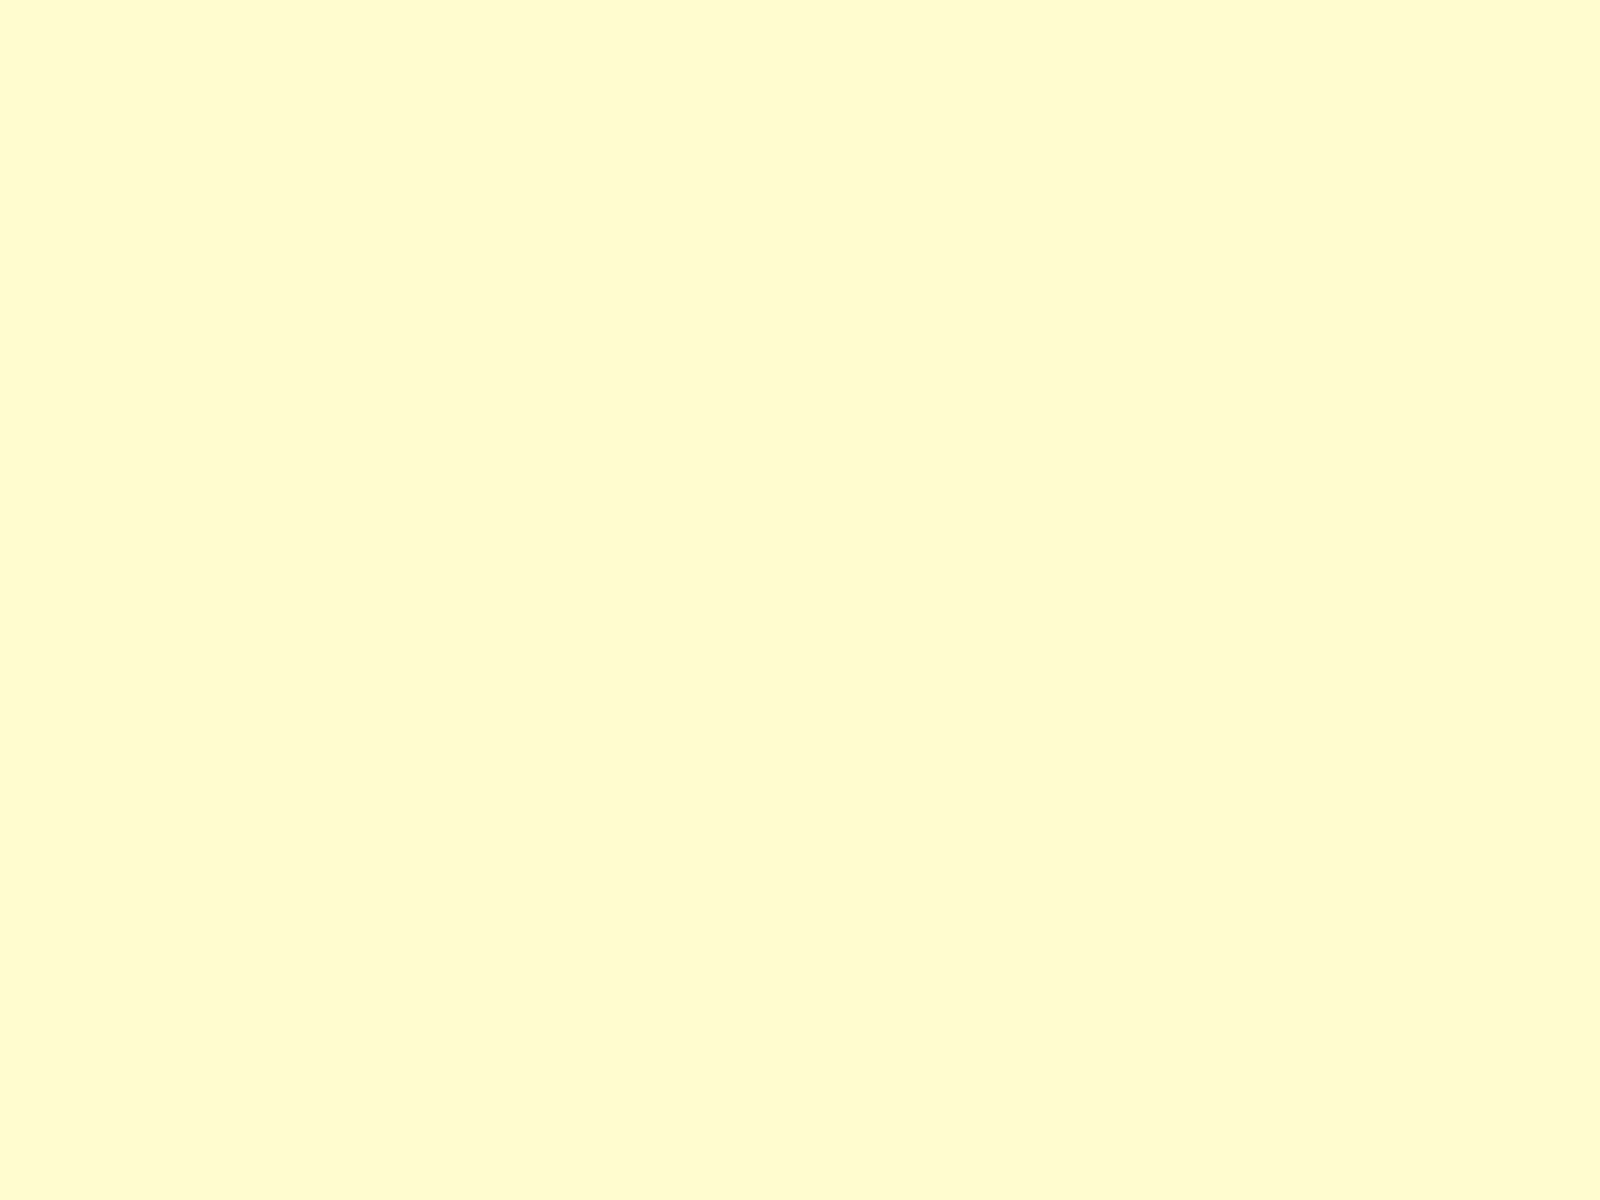 Solid Cream Color Background wwwgalleryhipcom   The 1600x1200